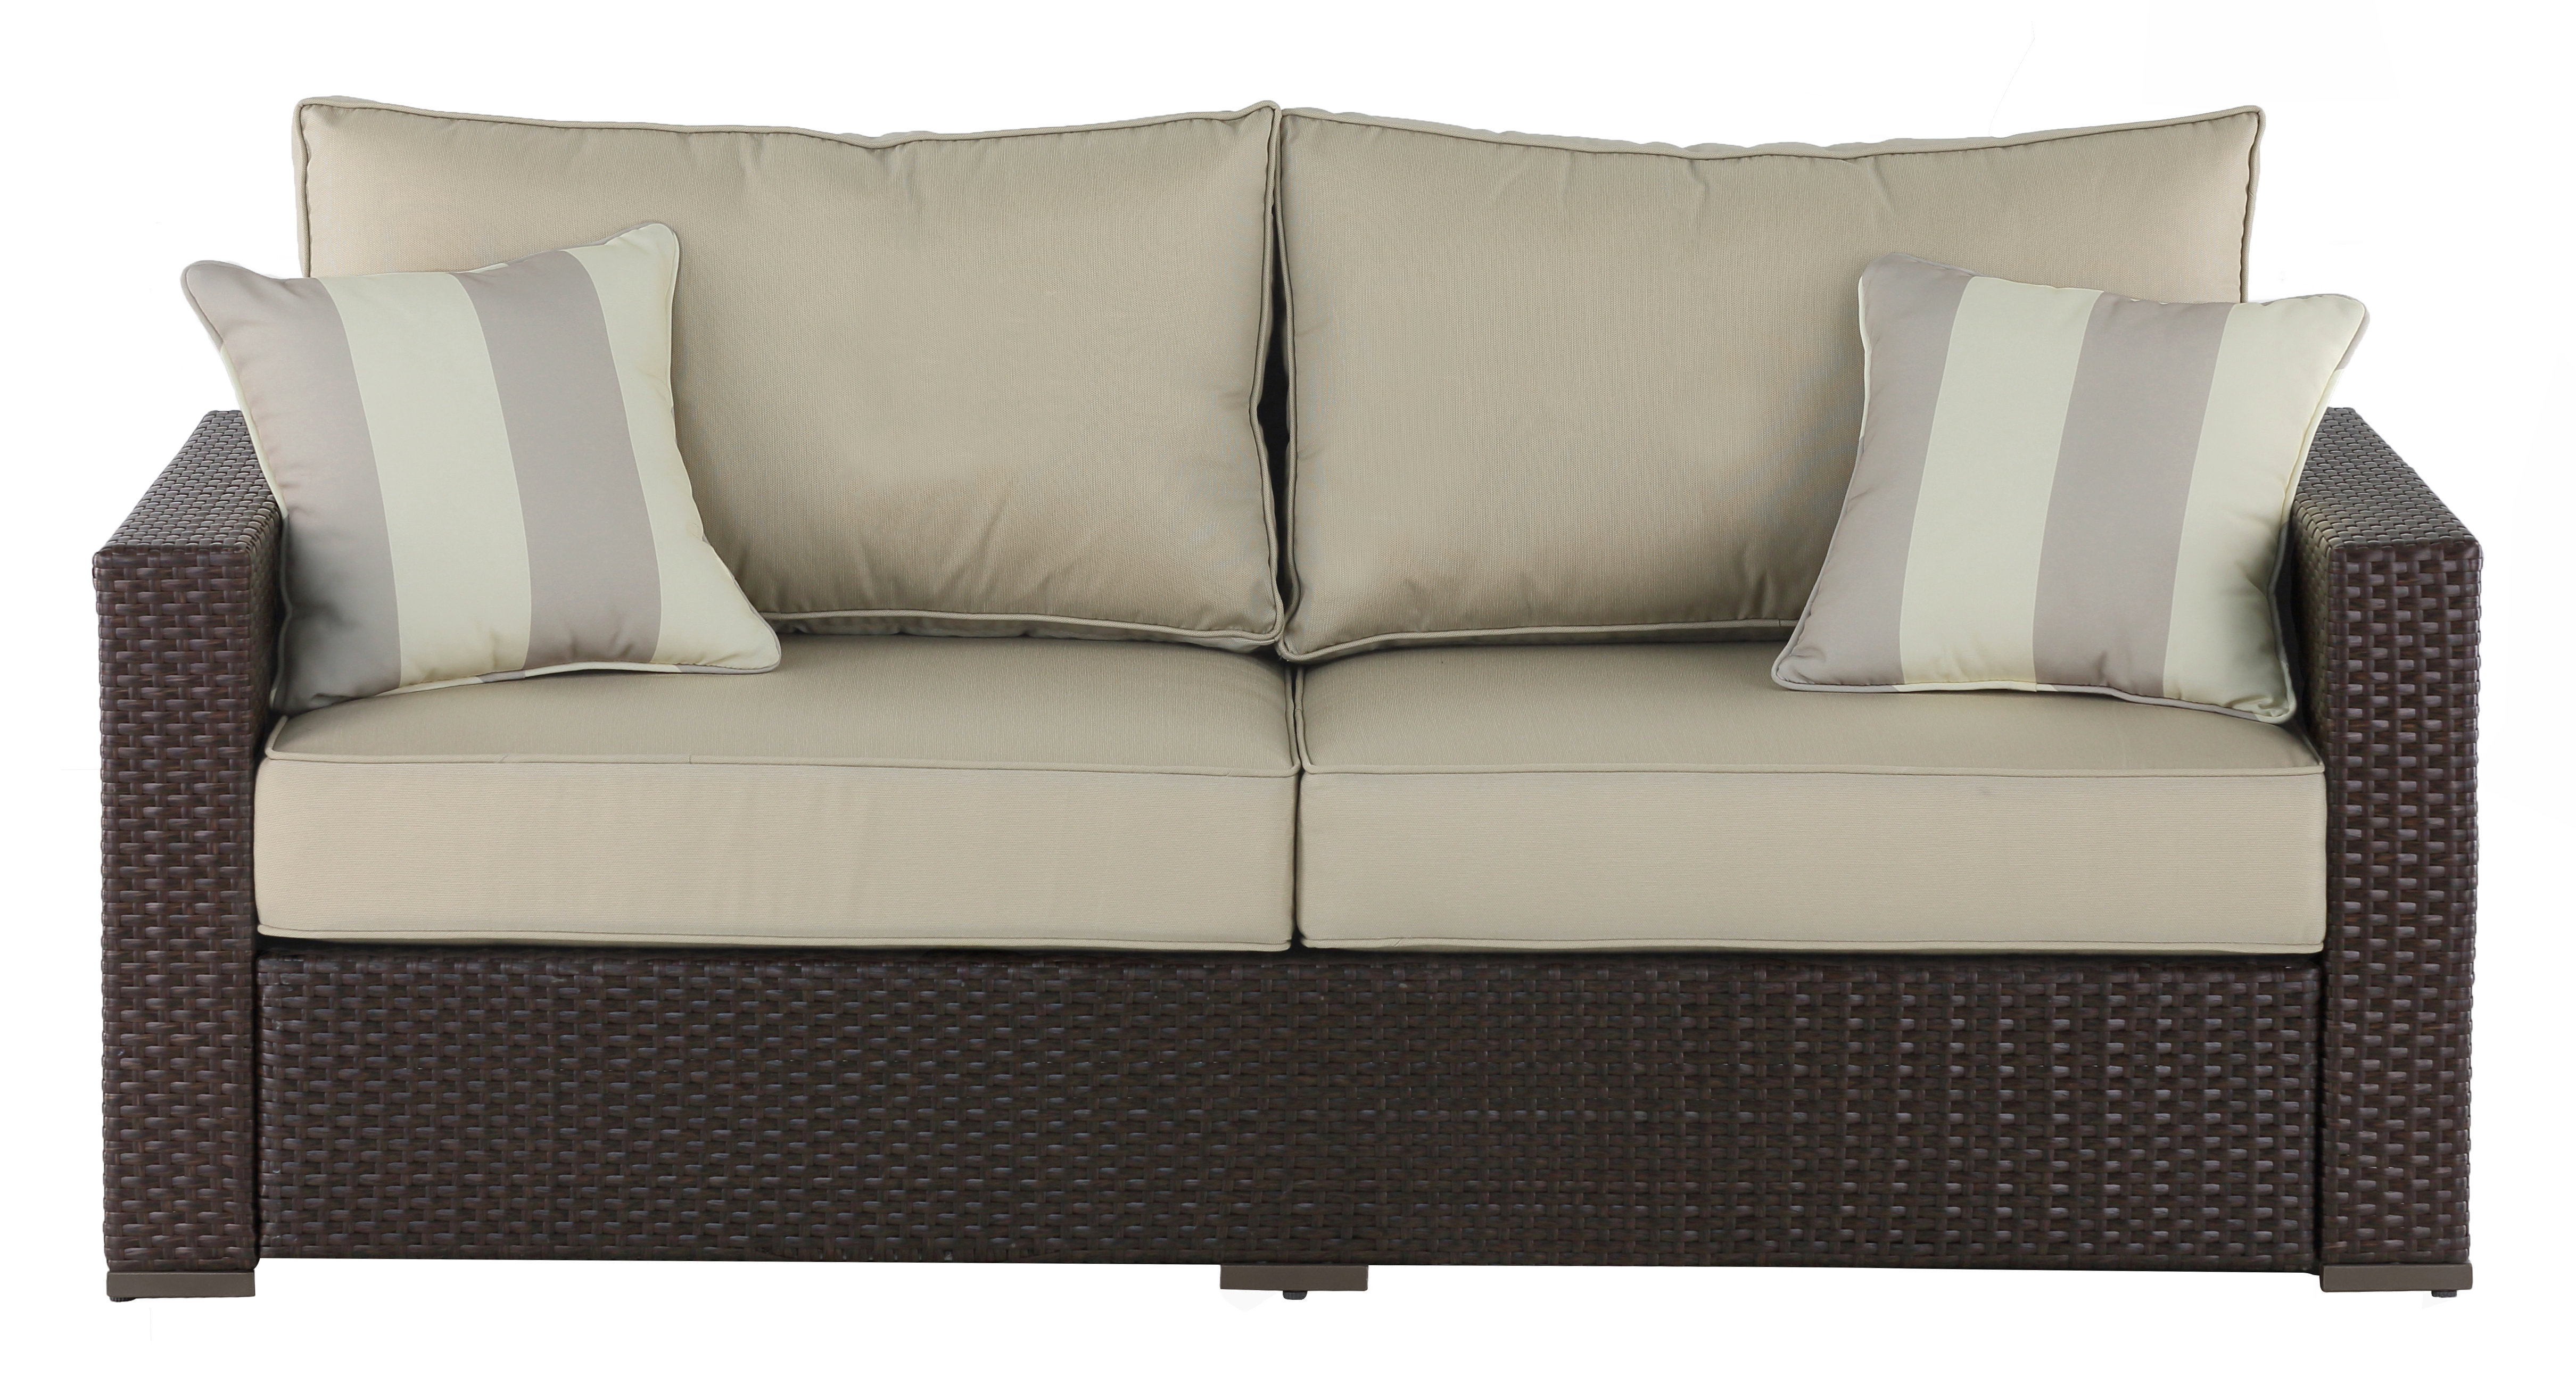 Hursey Patio Sectionals Intended For Well Liked Laguna Outdoor Sofa With Cushions (View 14 of 20)